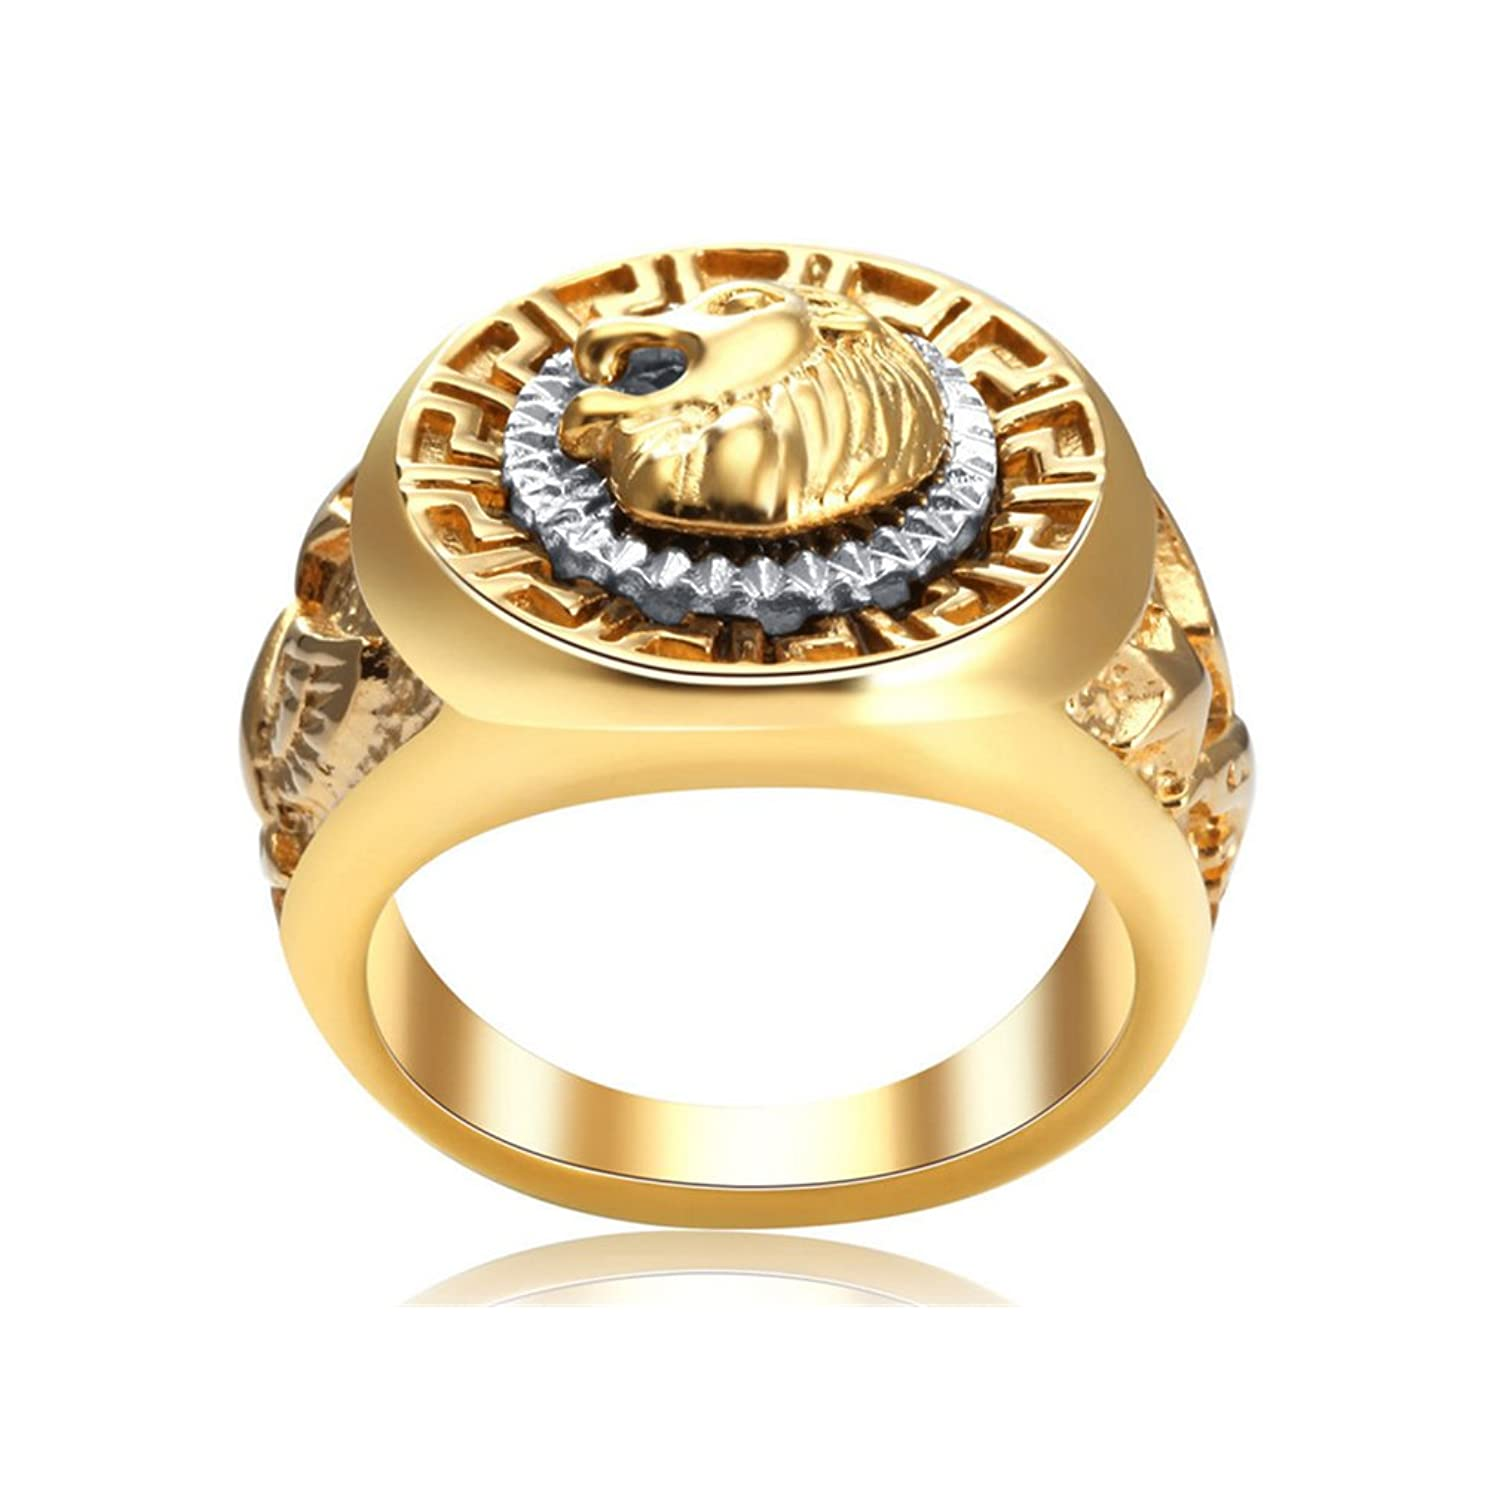 models ring stl lion jewelry cgtrader printable model print head mens rings